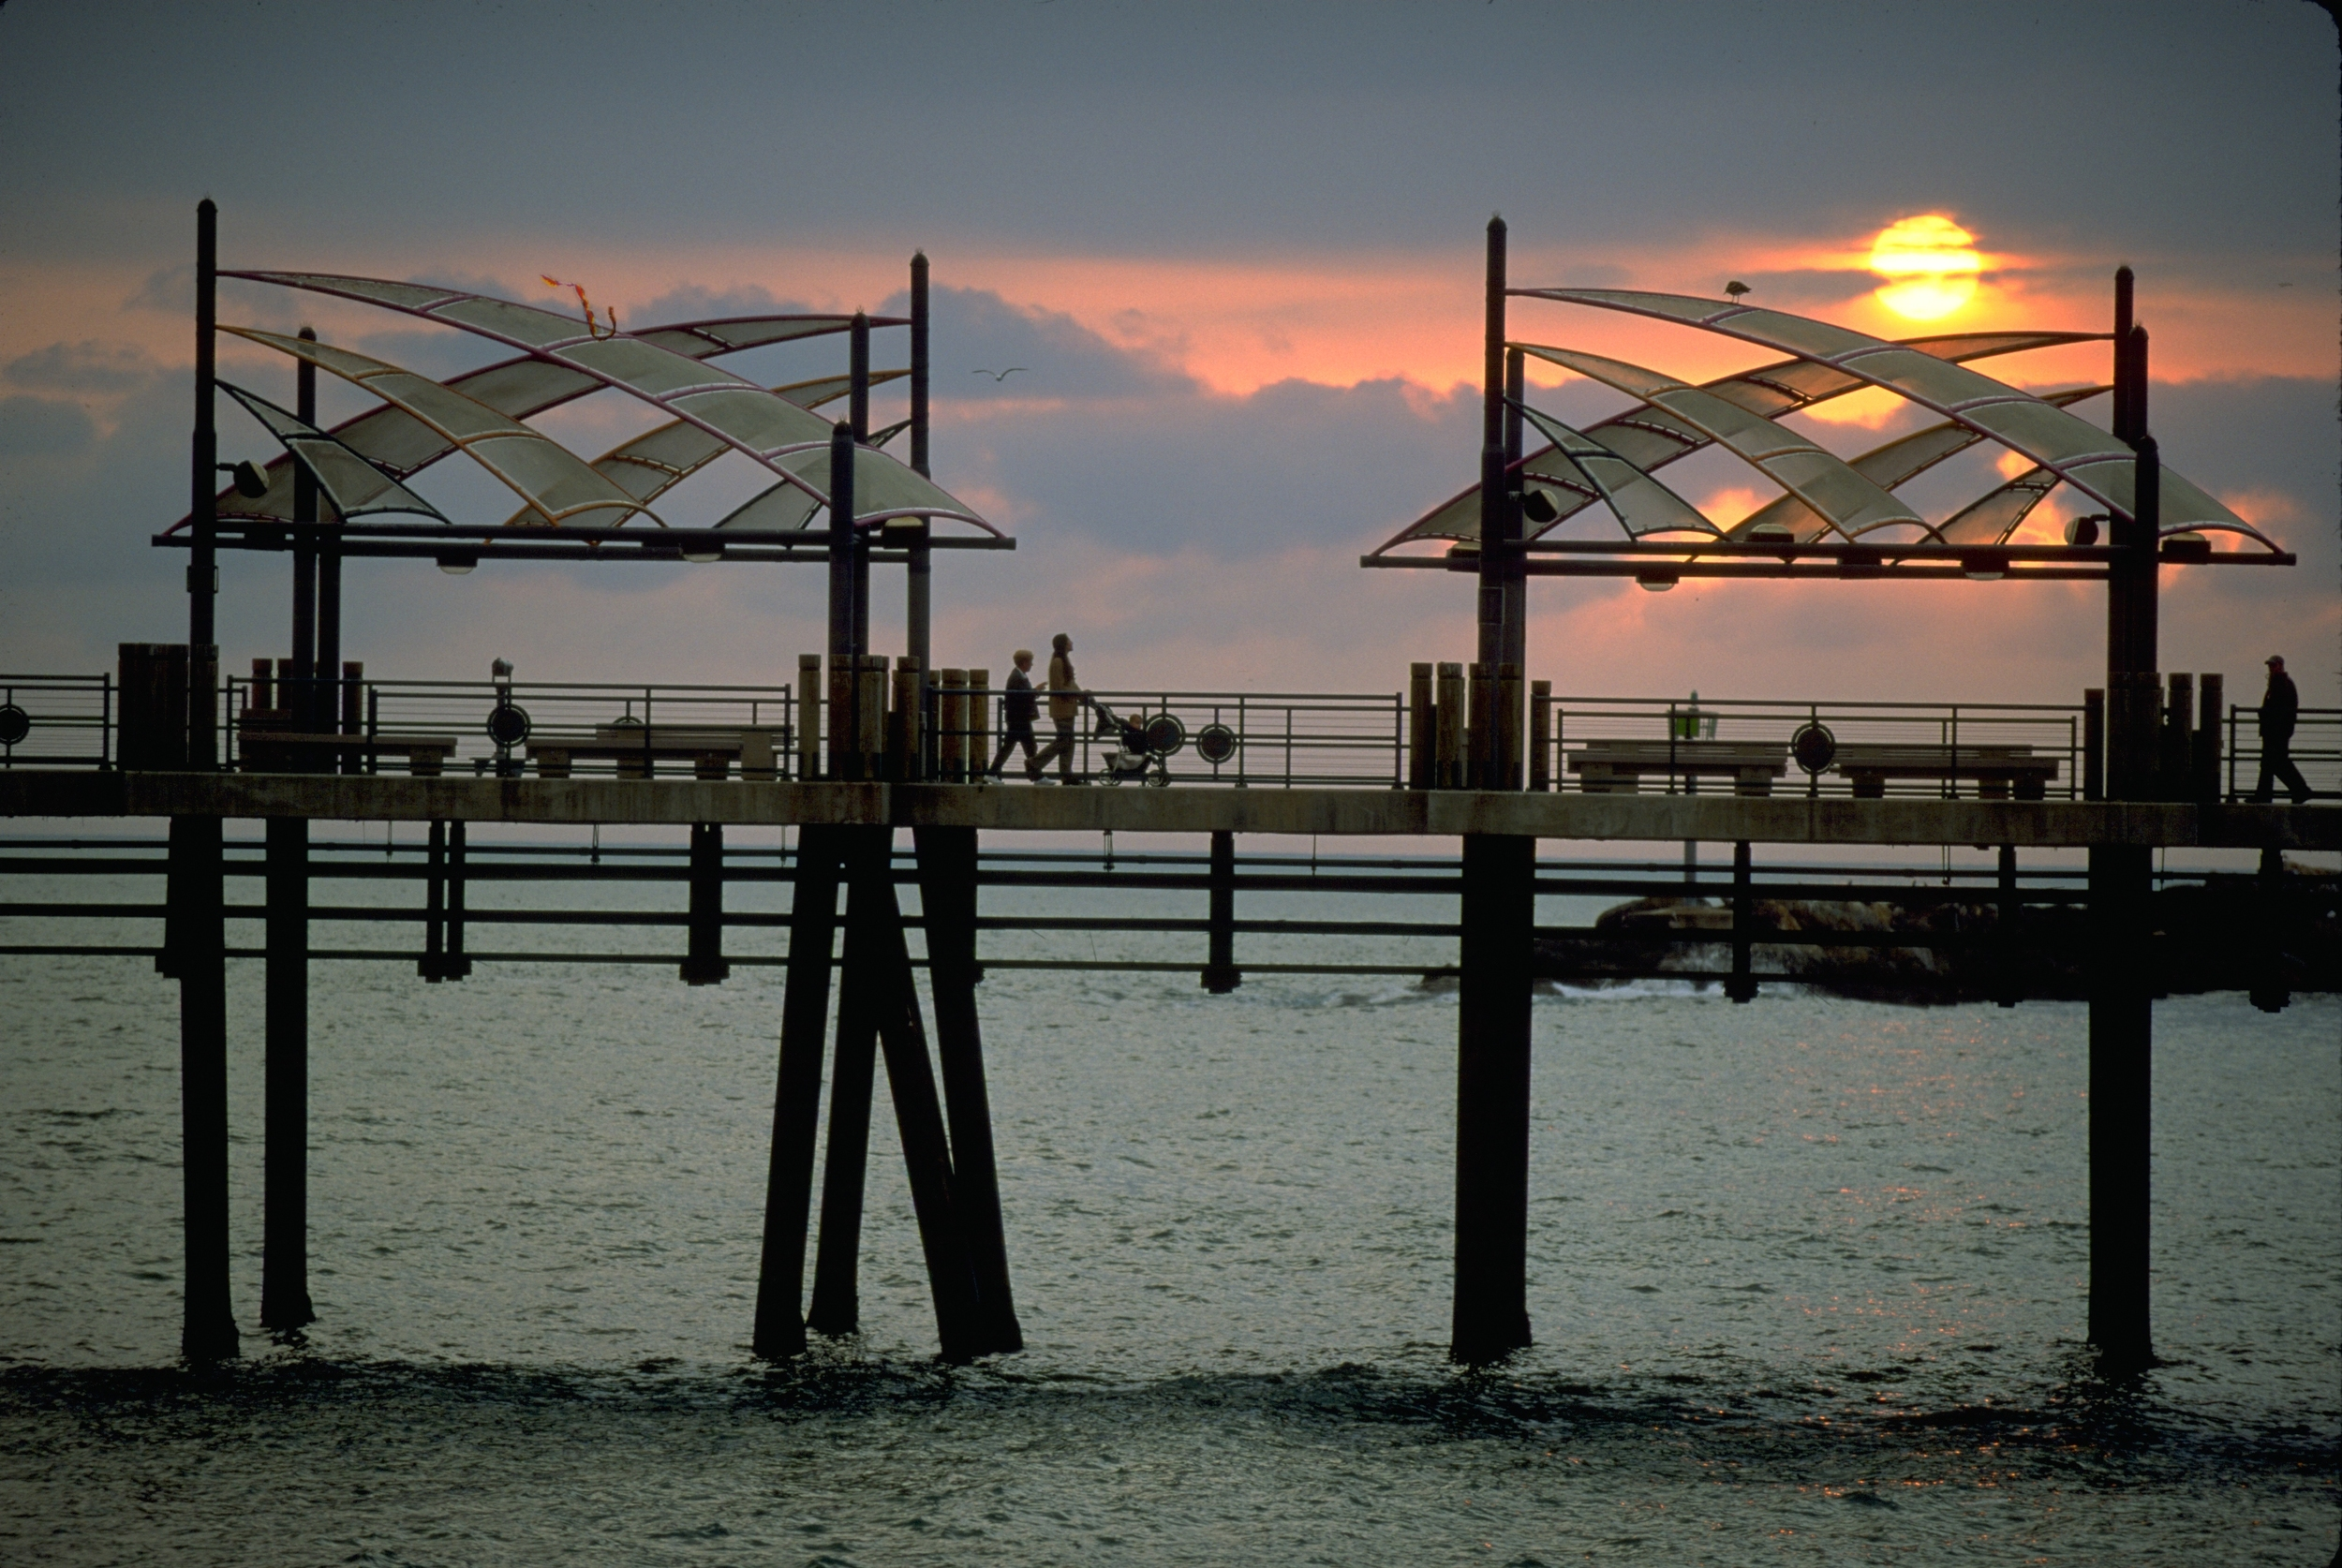 Pier cloudy sunset.jpg